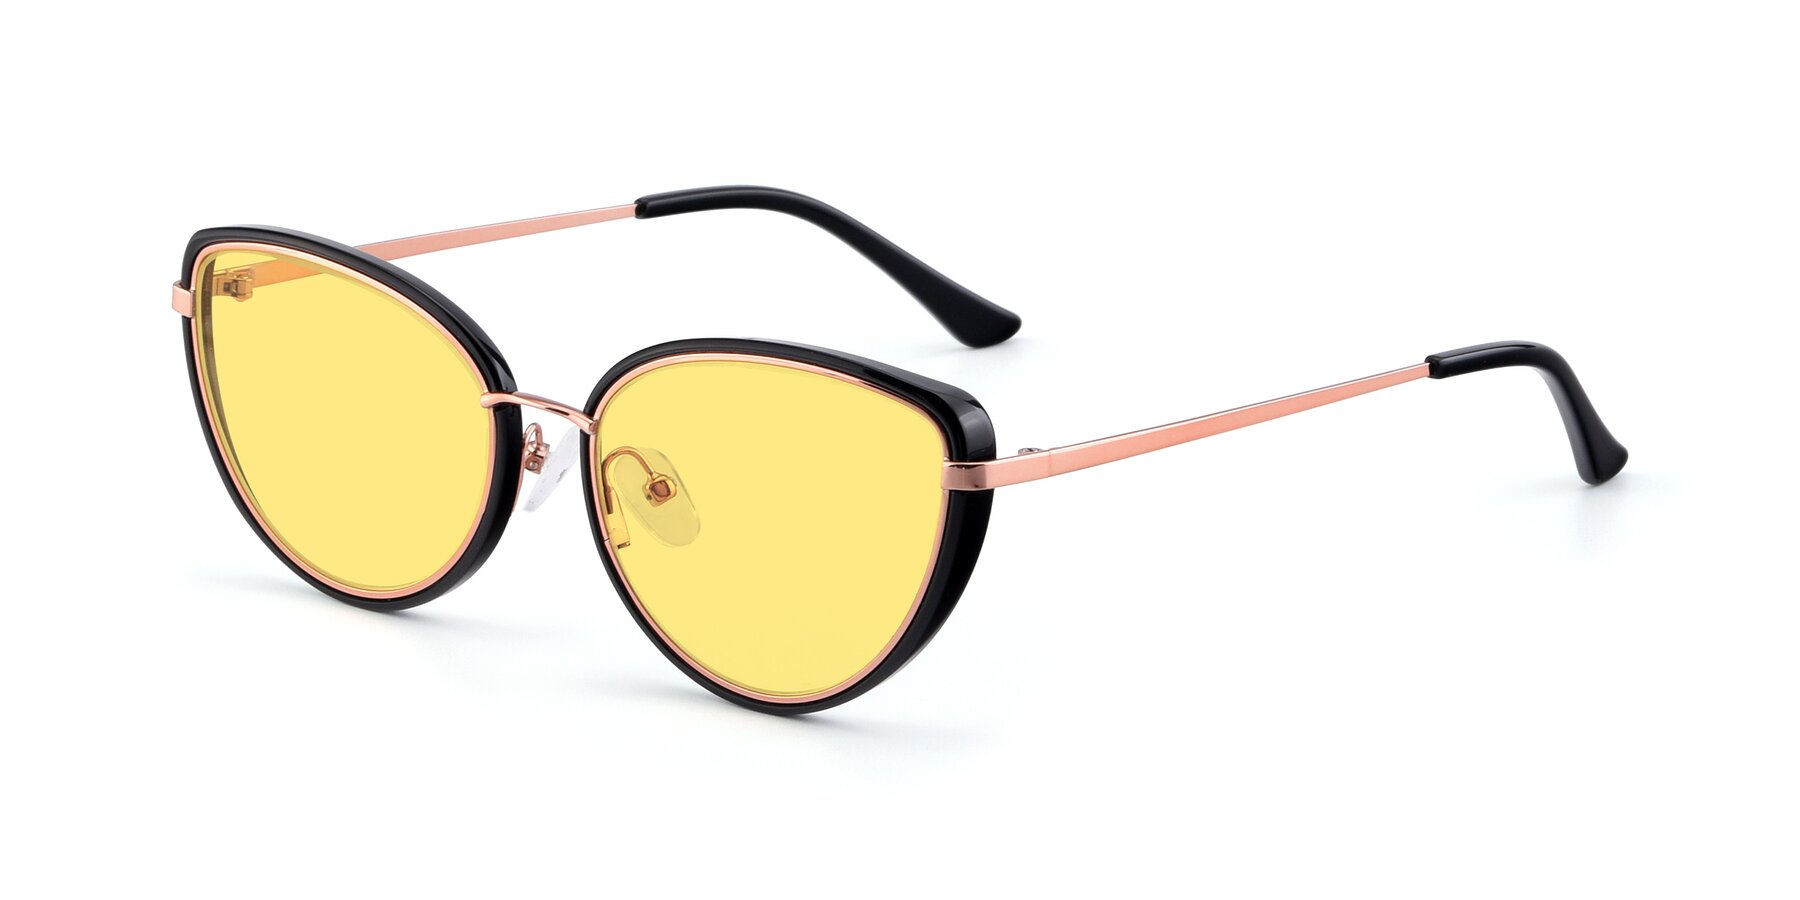 Angle of 17706 in Black-Rose Gold with Medium Yellow Tinted Lenses